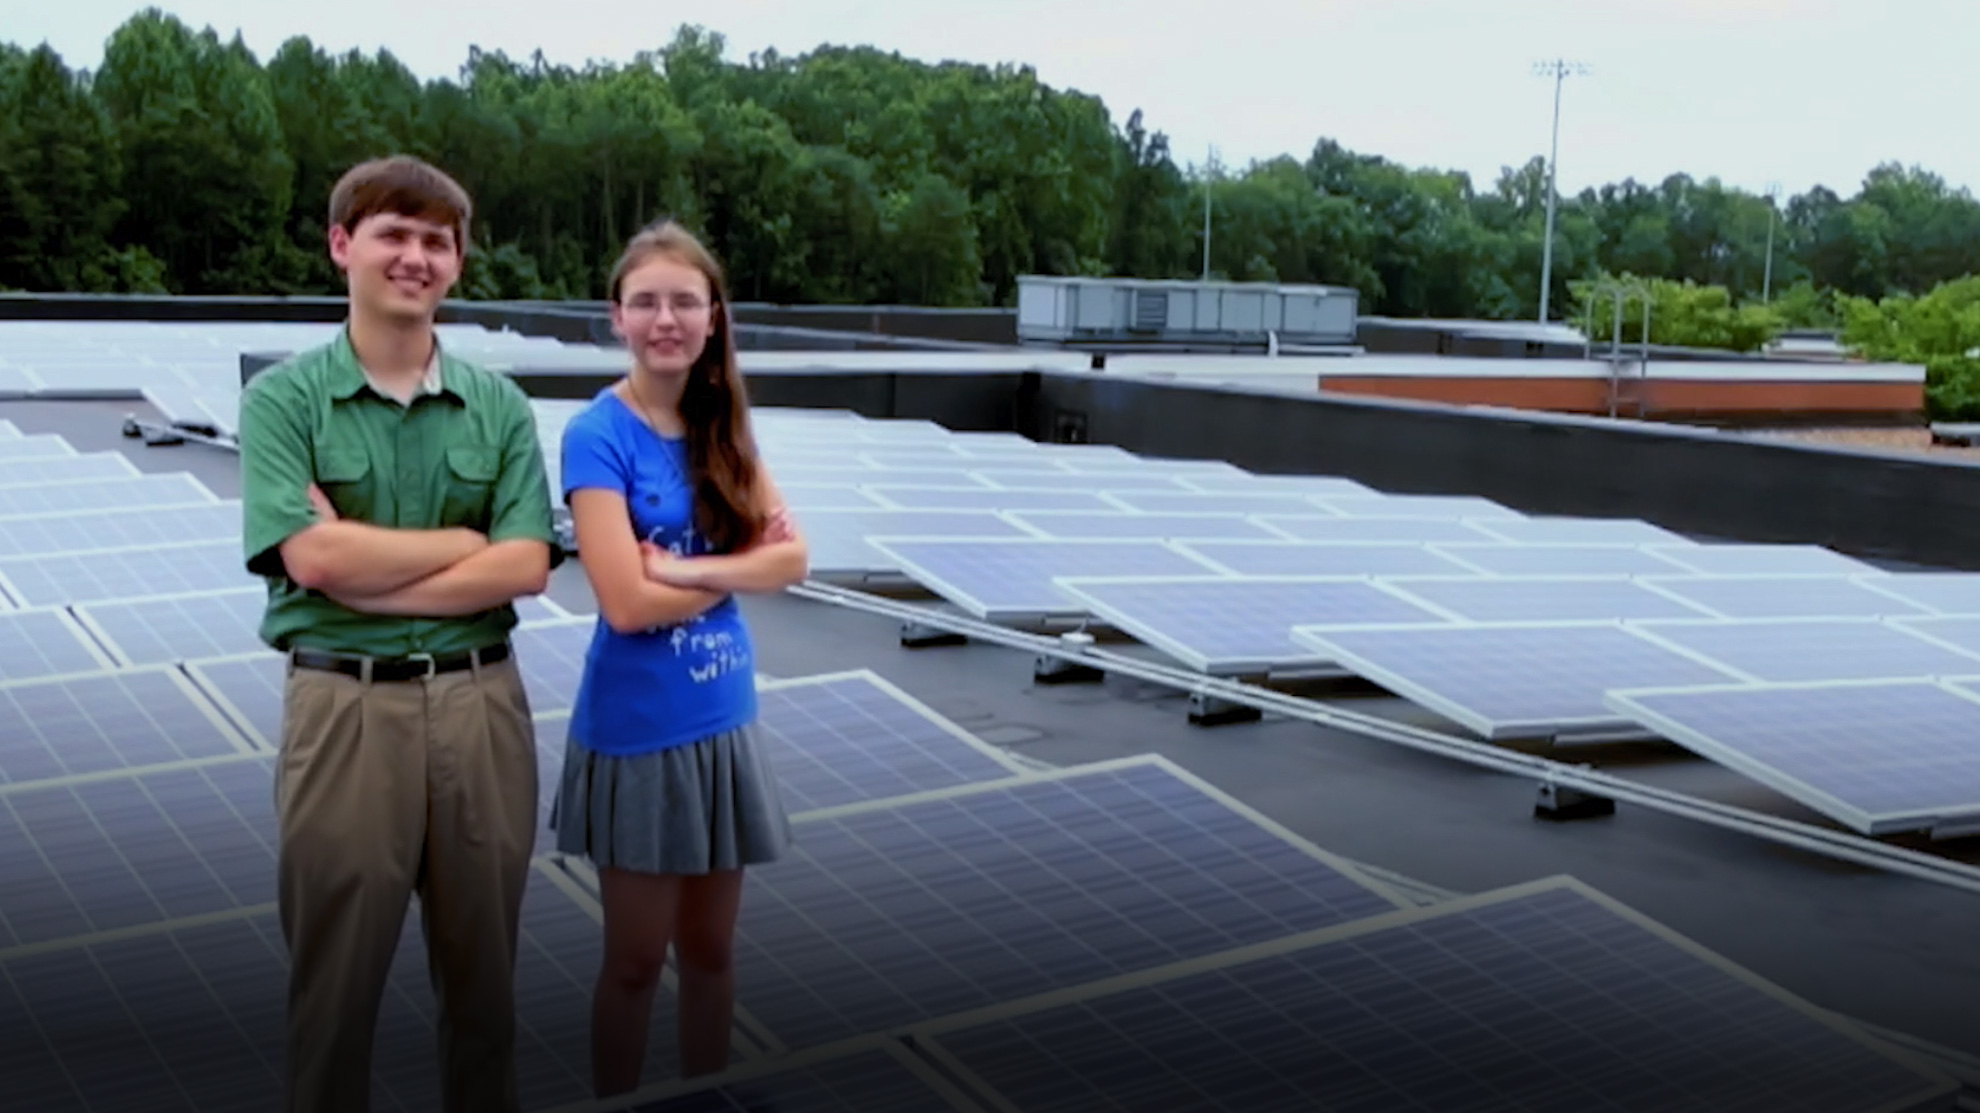 Amory Fischer And Elinor Glassco Stories Of Solar